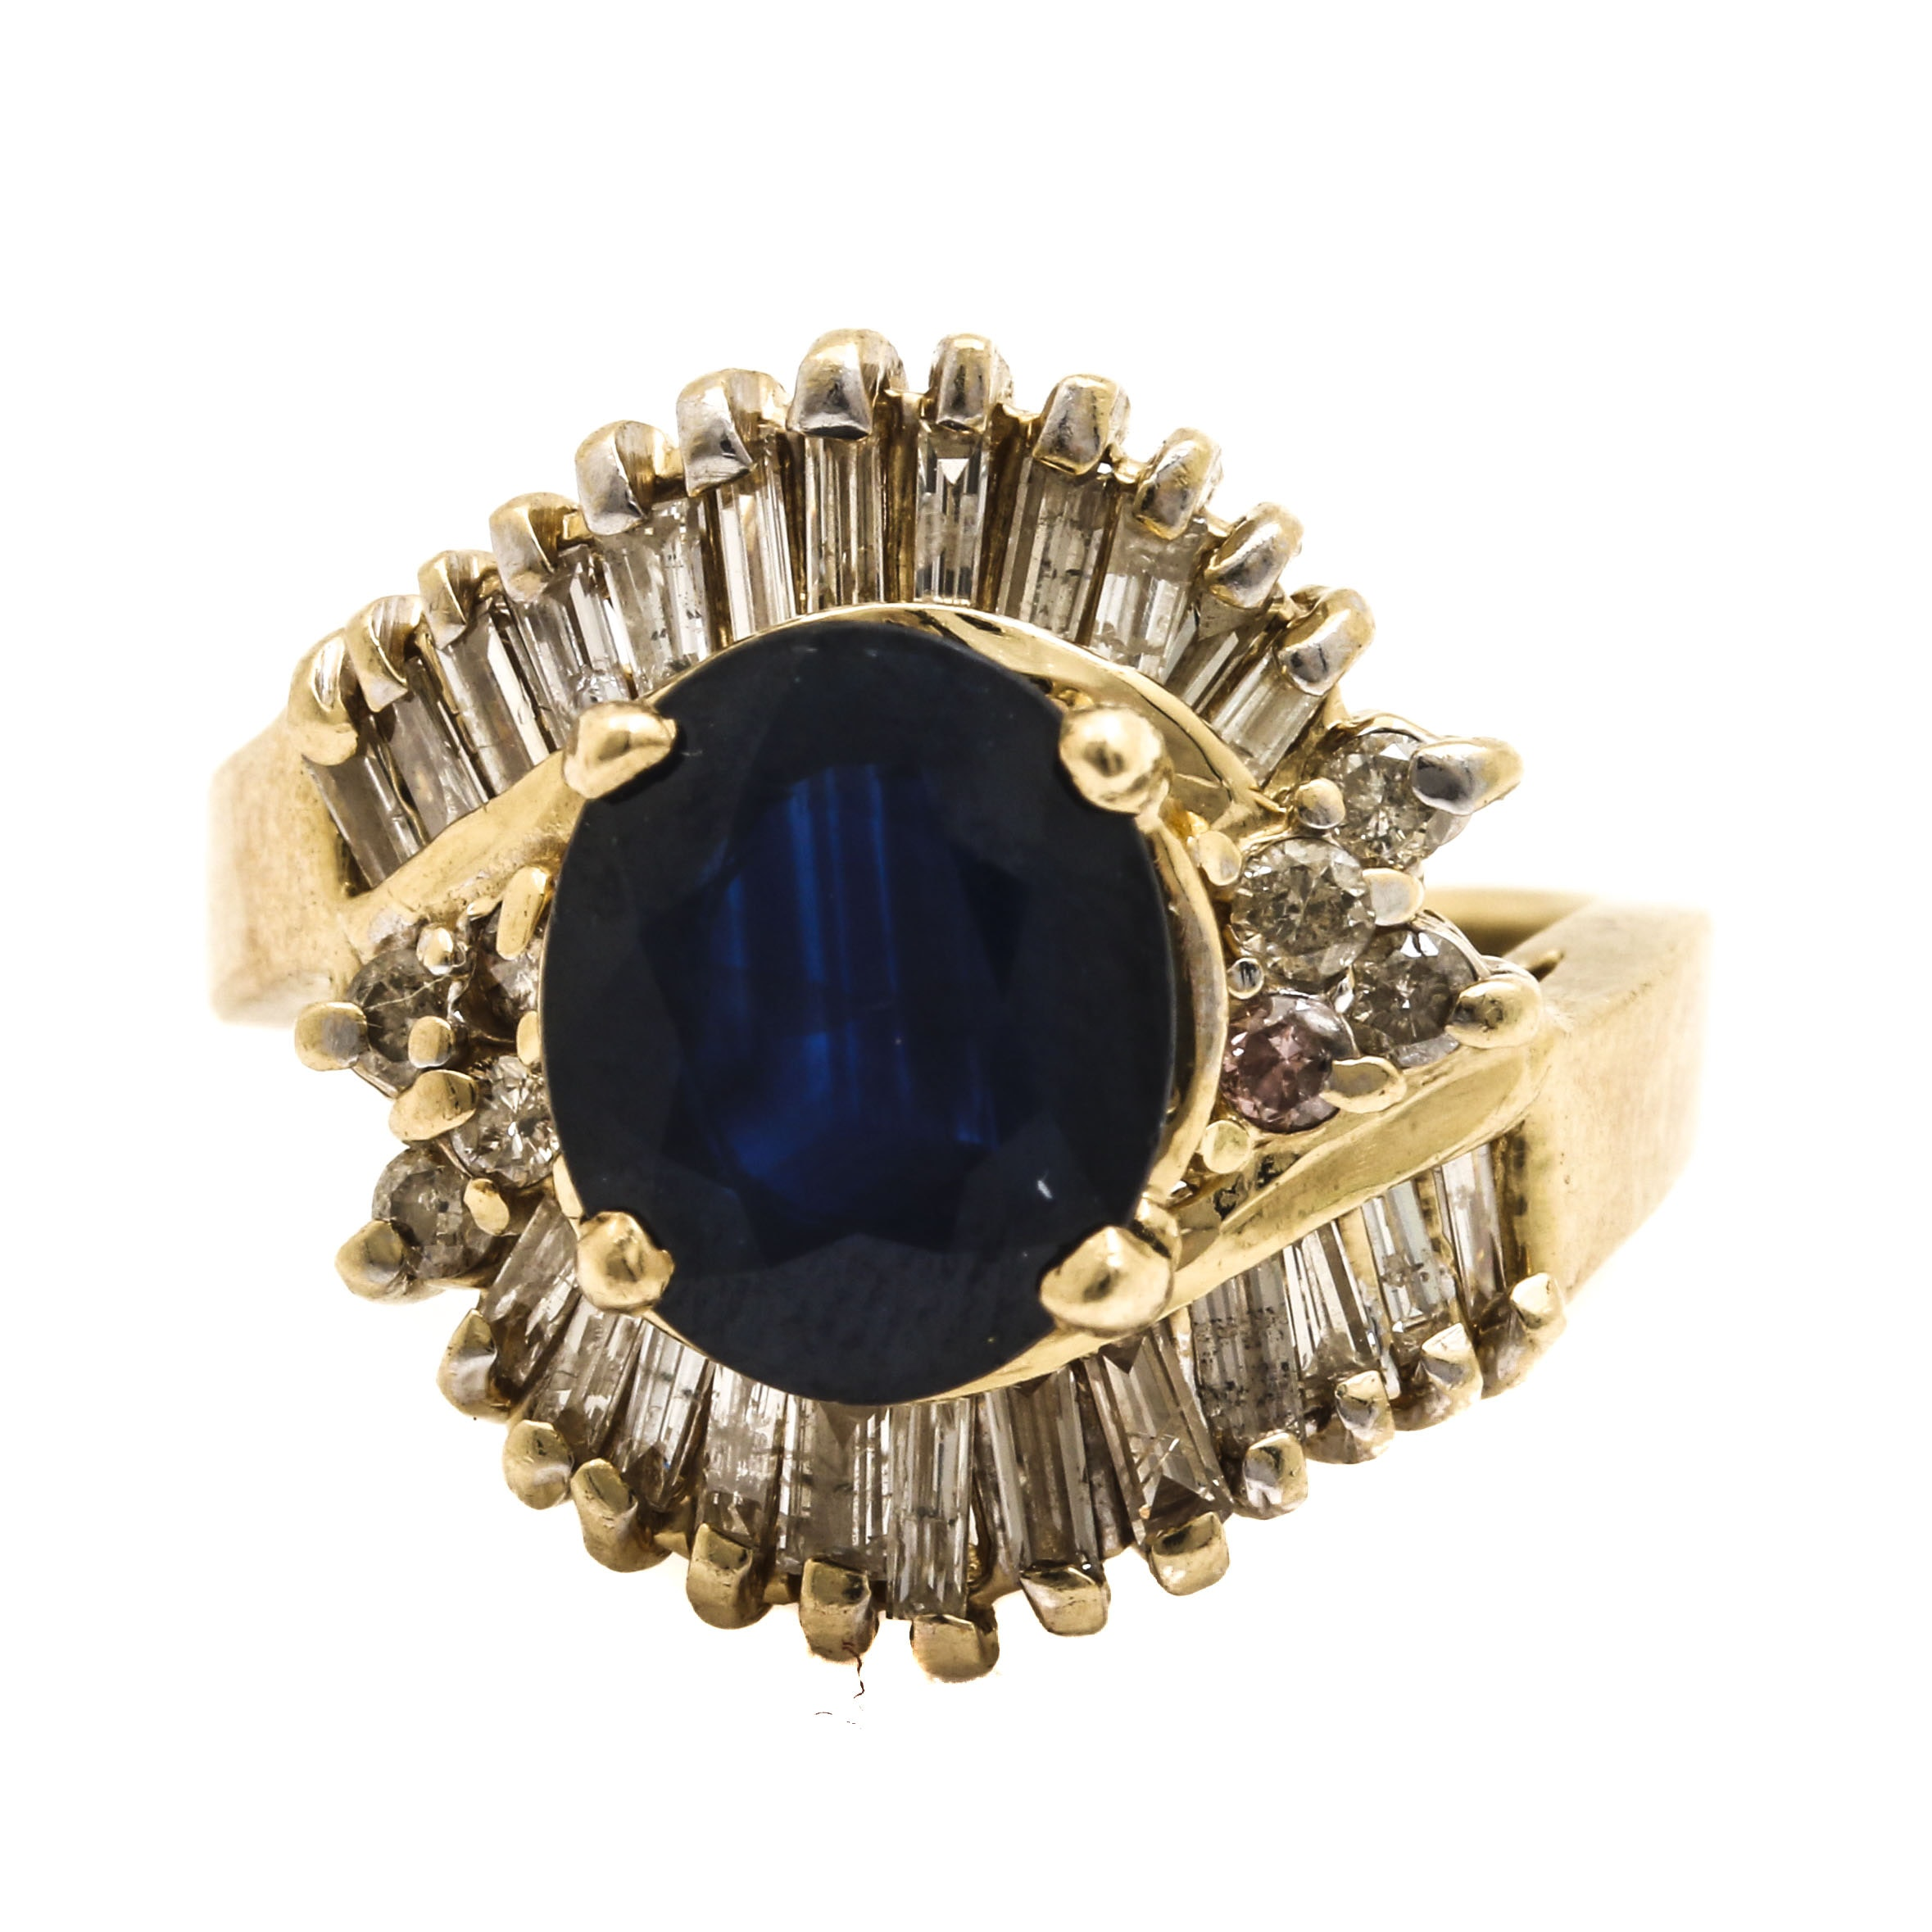 14K Yellow Gold 2.61 CT Sapphire and Diamond Ring